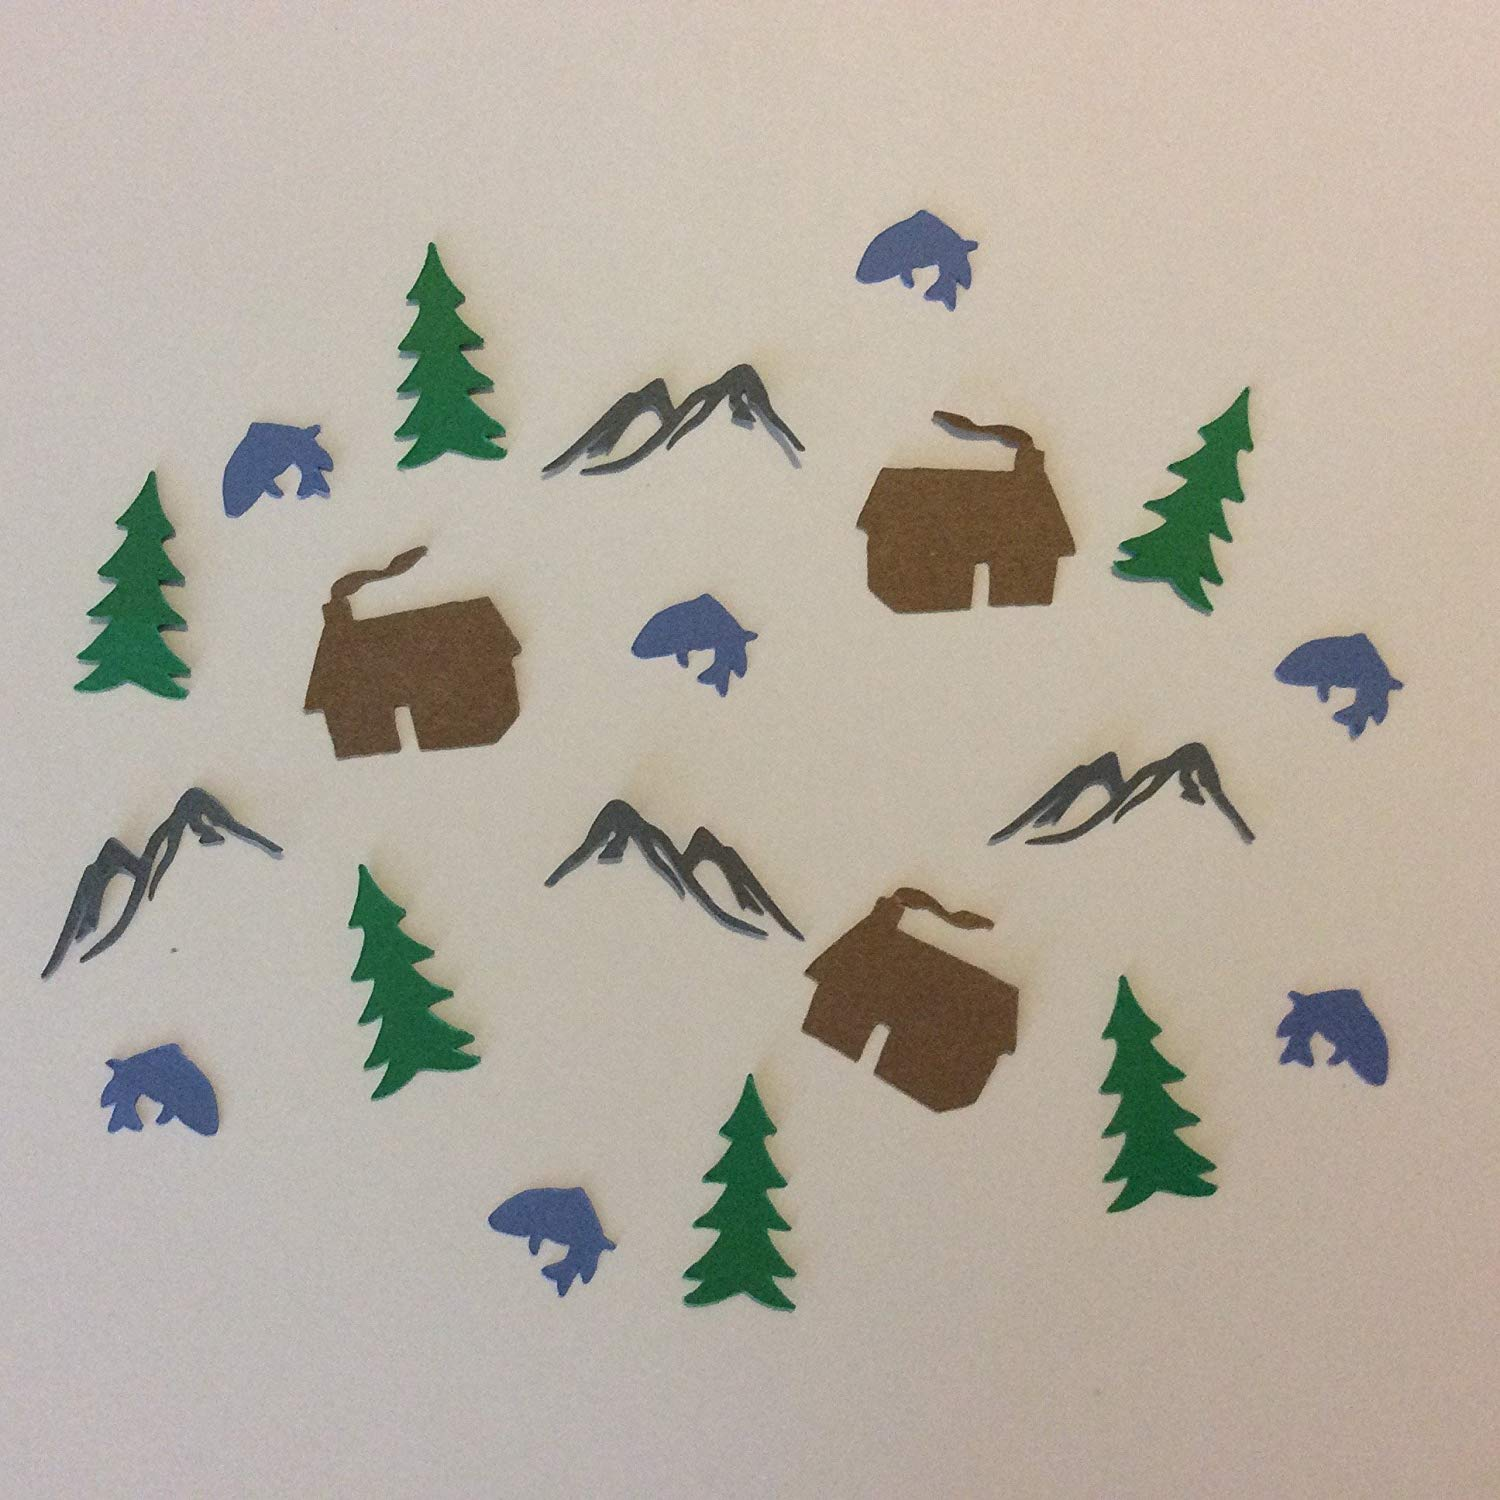 1in Confetti Set, Cabin Cut Outs, Fish Cut Outs, Tree Cut Outs, Mountain Cut Outs, Woodland Theme, Rustic Theme, Camping Decorations, Table Scatter, Rustic Wedding, Party Supplies, Confetti